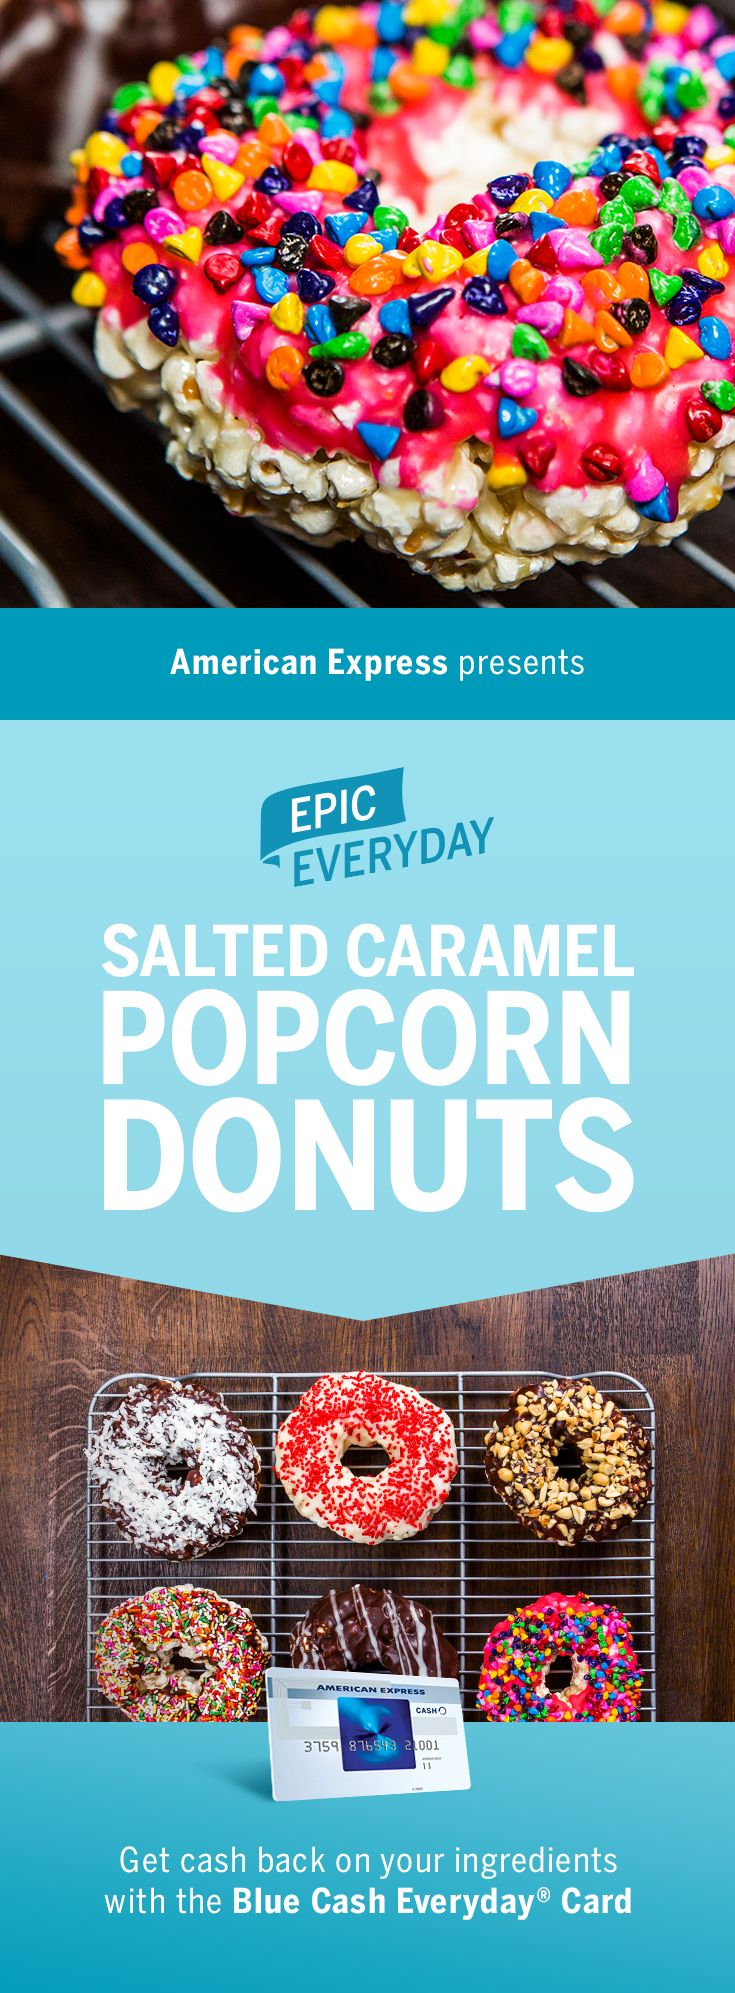 "We teamed up with Buzzfeed for an epic homemade movie snack: the Popcorn ""Donut."" Make this in three easy steps: create a sweet/savory salted caramel sauce, mold popcorn into ""donut"" shape, then add frosting and sprinkles. When you shop for the ingredients, get 3% cash back at US supermarkets on up to $6,000 in purchases with the Blue Cash Everyday Card from American Express. Terms apply. Learn more at americanexpress.com/epiceveryday. Click the pin to get the full recipe."